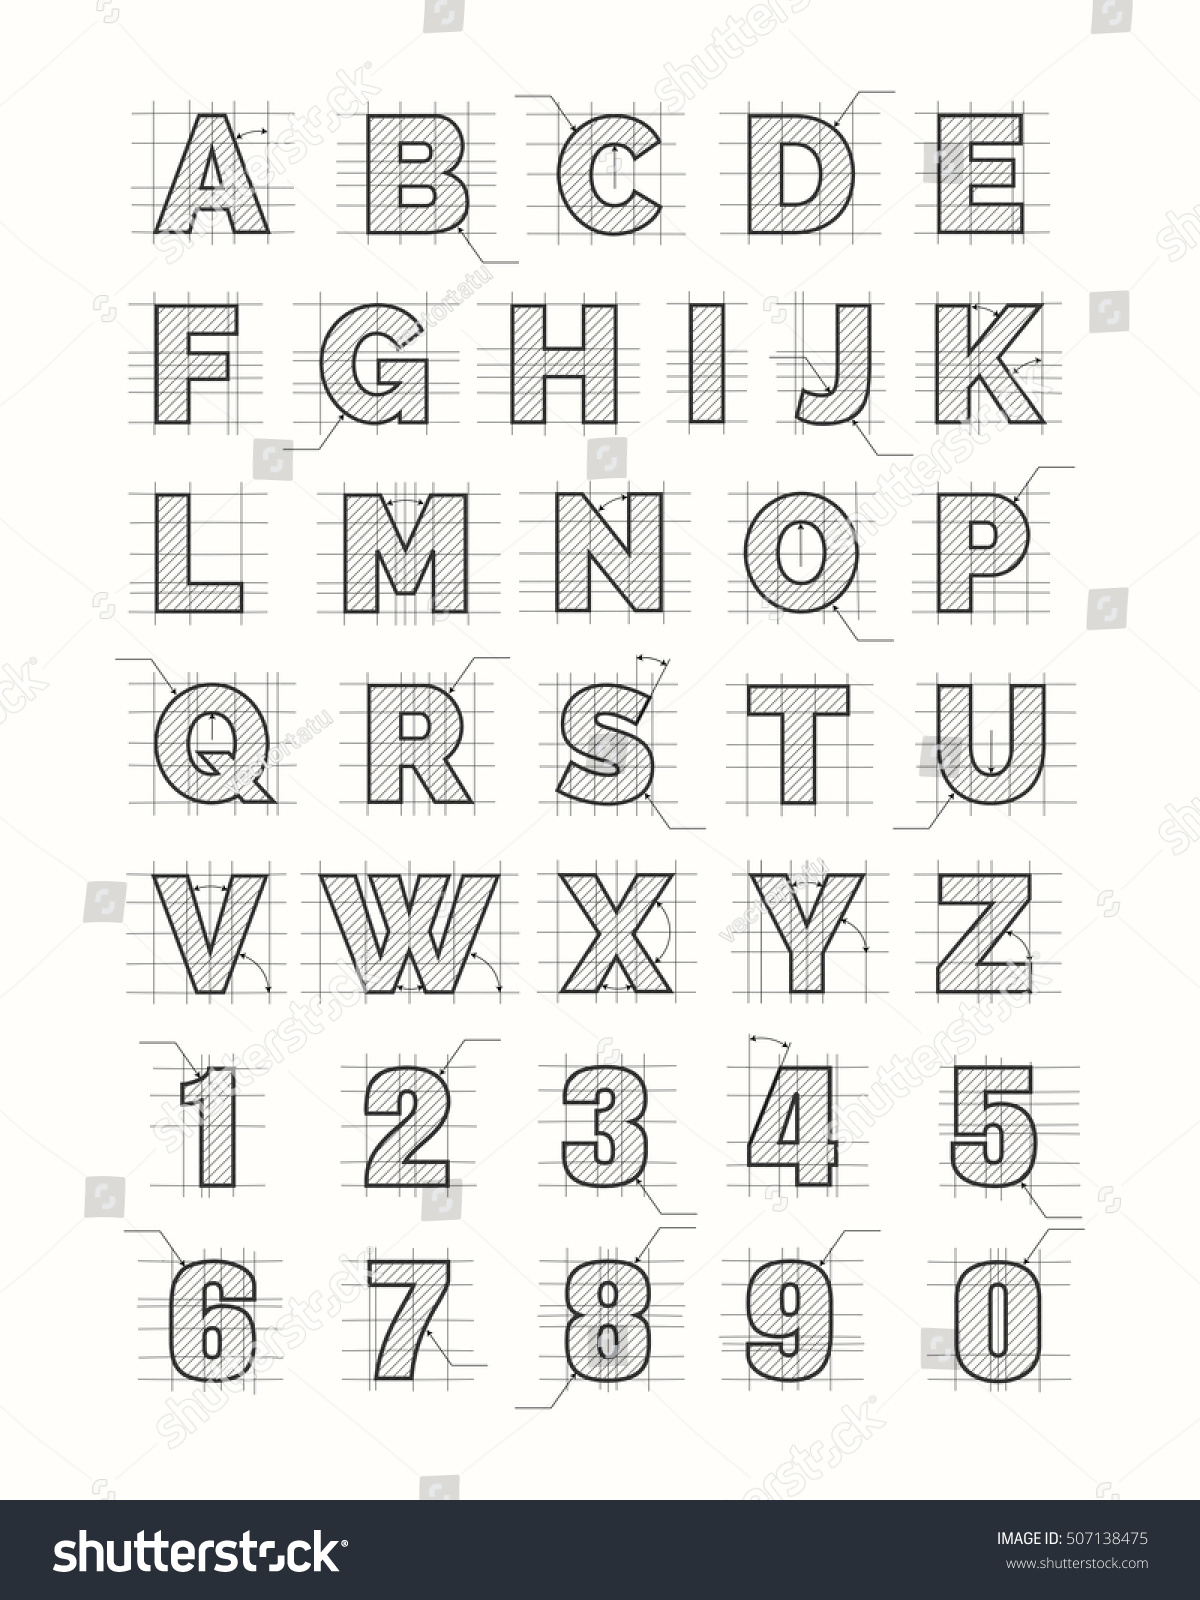 Drafting Paper Alphabet Vector Drawing Sketch Font Letters